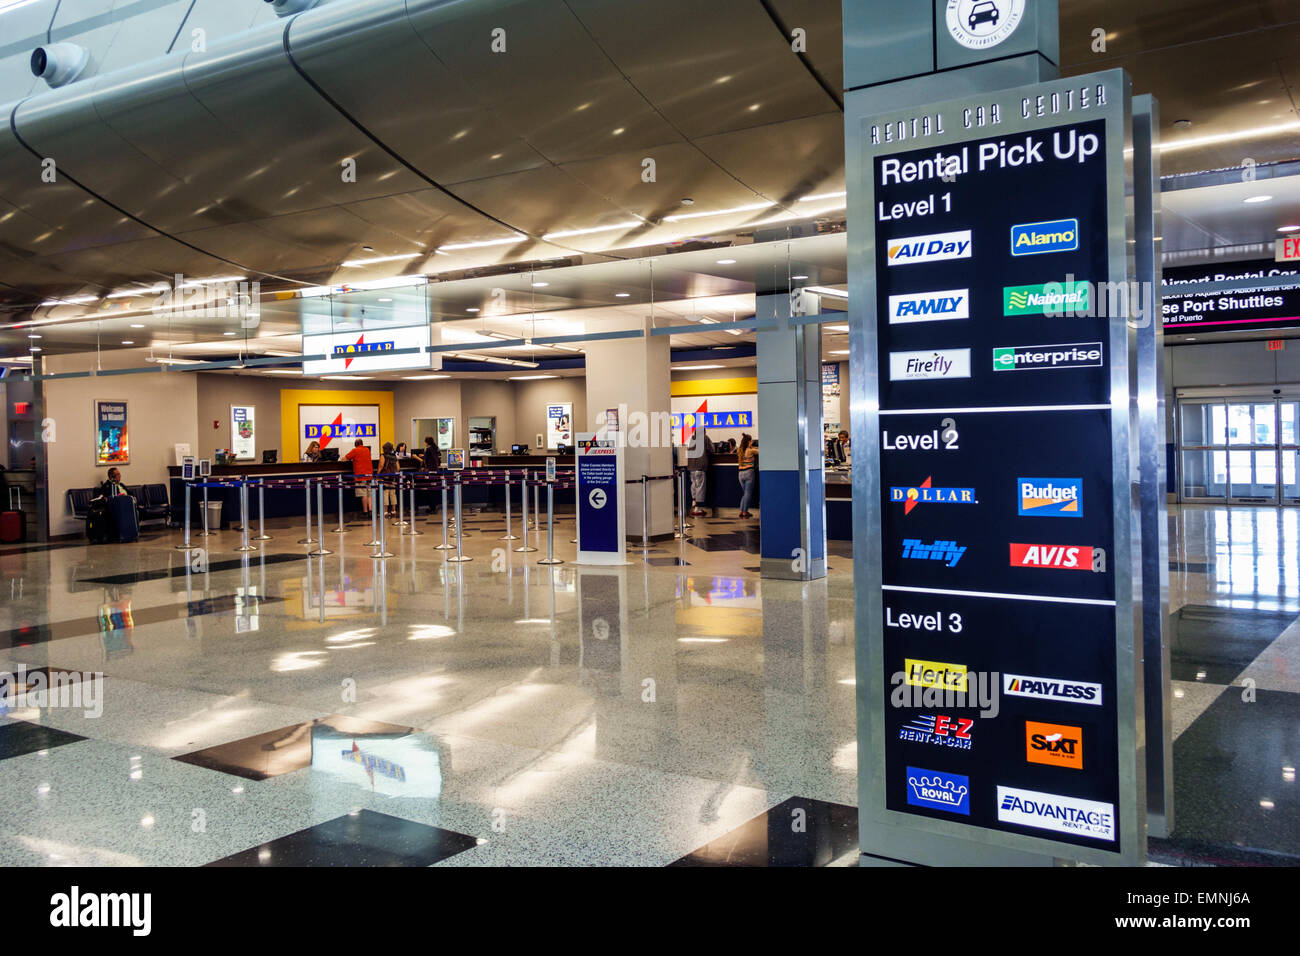 Orlando Airport Car Rental Counter Location